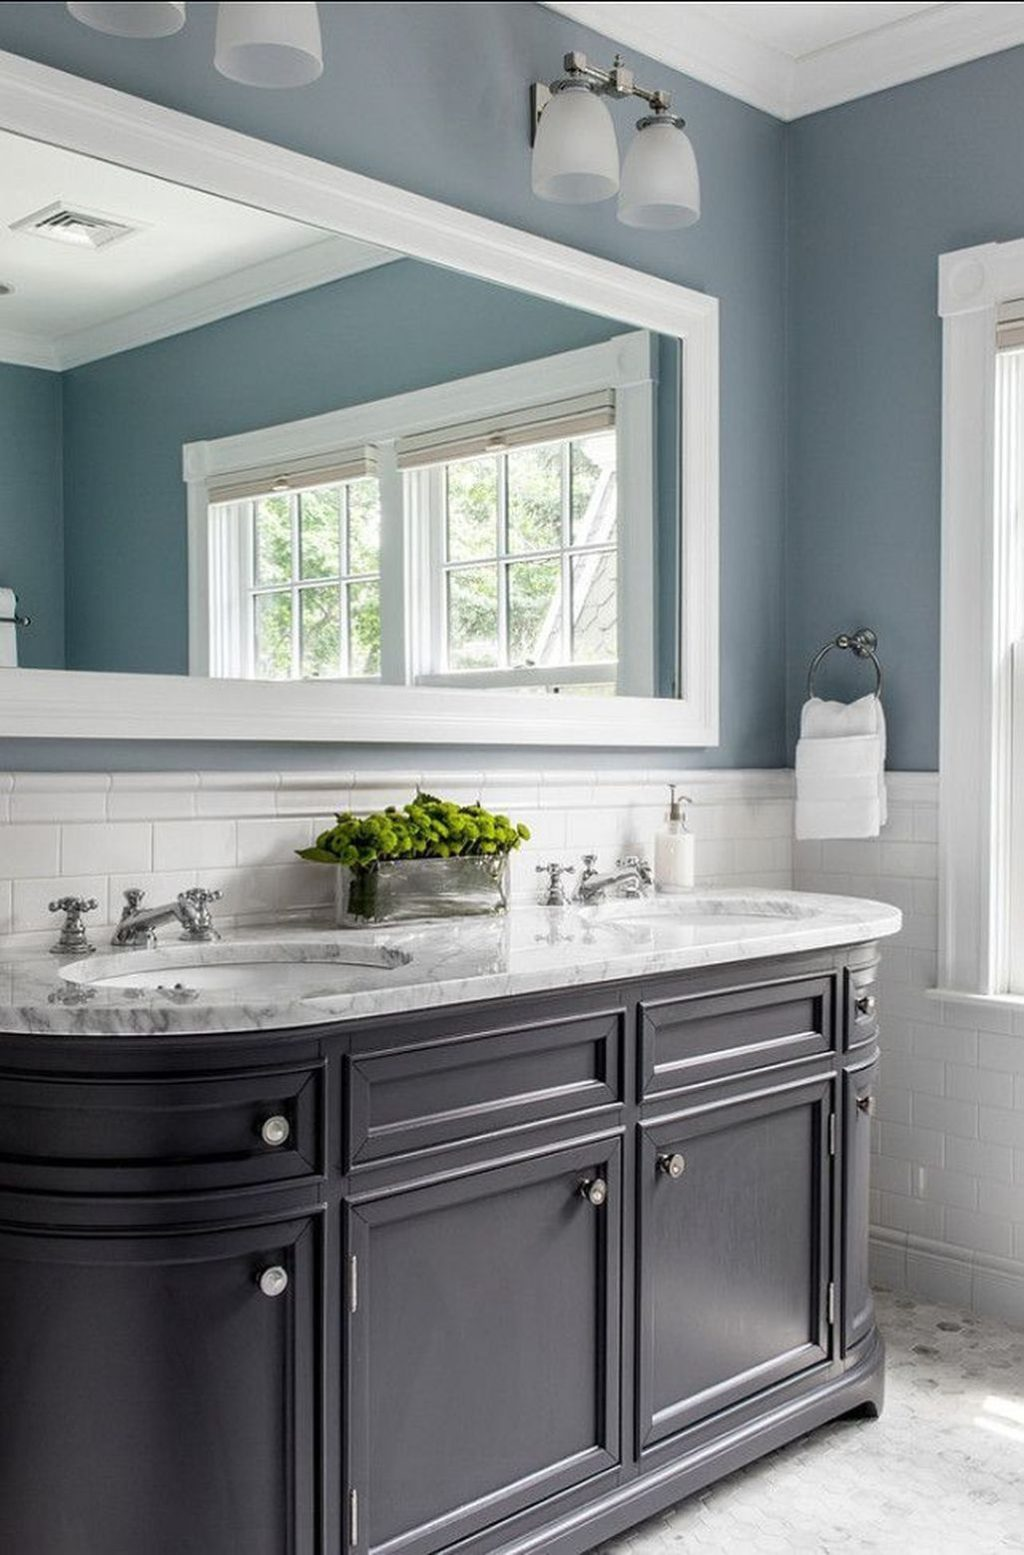 Use-of-paint-1-1024x1555 Top 10 Outdated Bathroom Design Trends to Avoid in 2021